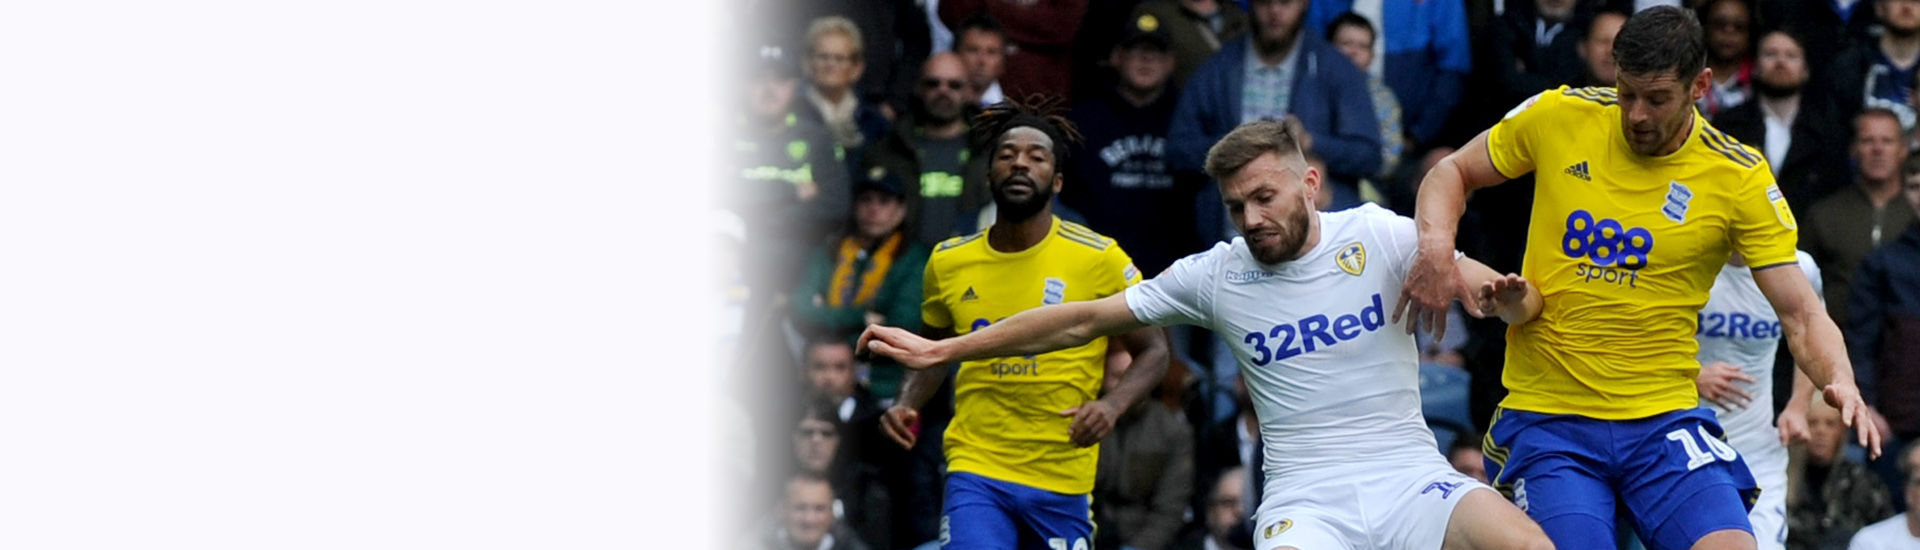 REPORT: LEEDS UNITED 1-2 BIRMINGHAM CITY